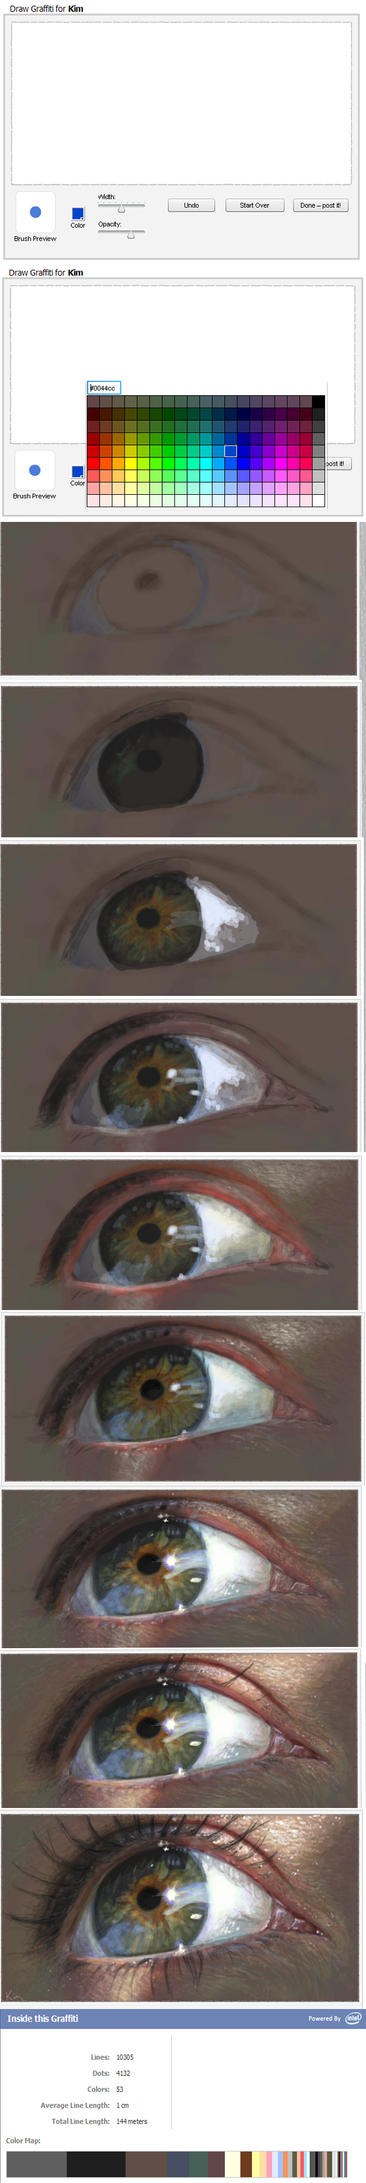 Painting a realistic eye - step by step by Grimstitch